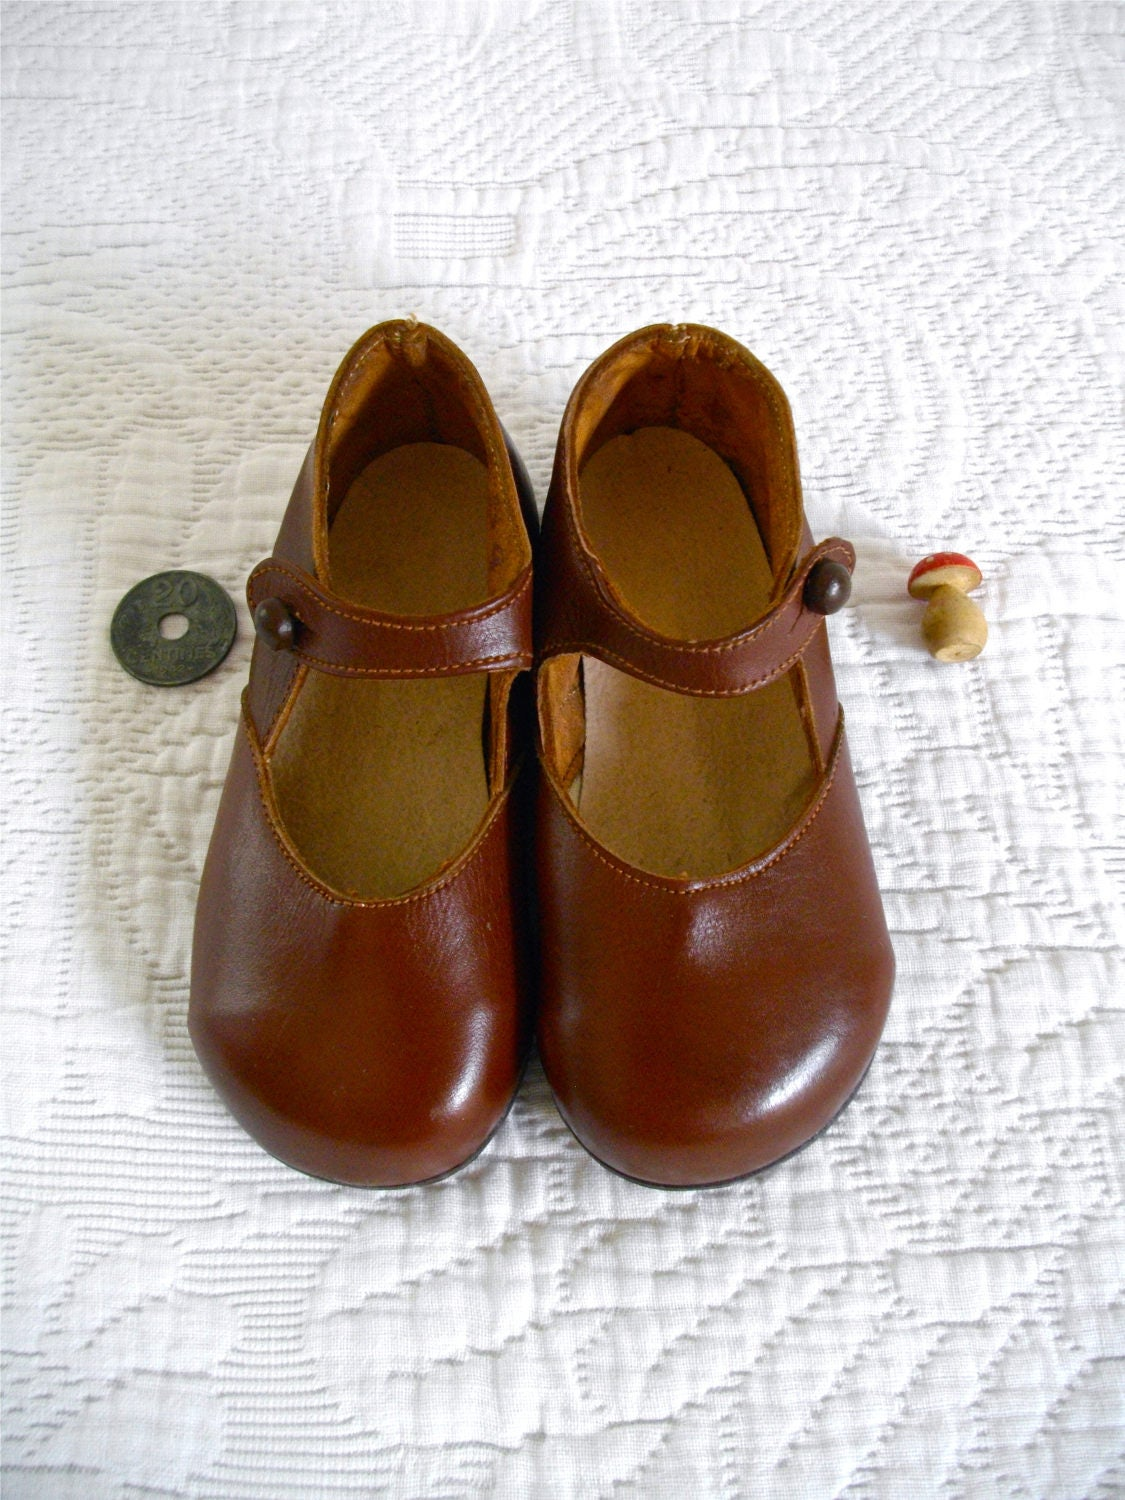 5a8a3b8576041 1950s French Antique Leather Girls - Child's Mary Jane - Romantic Shoes  Charles IX Plum French children